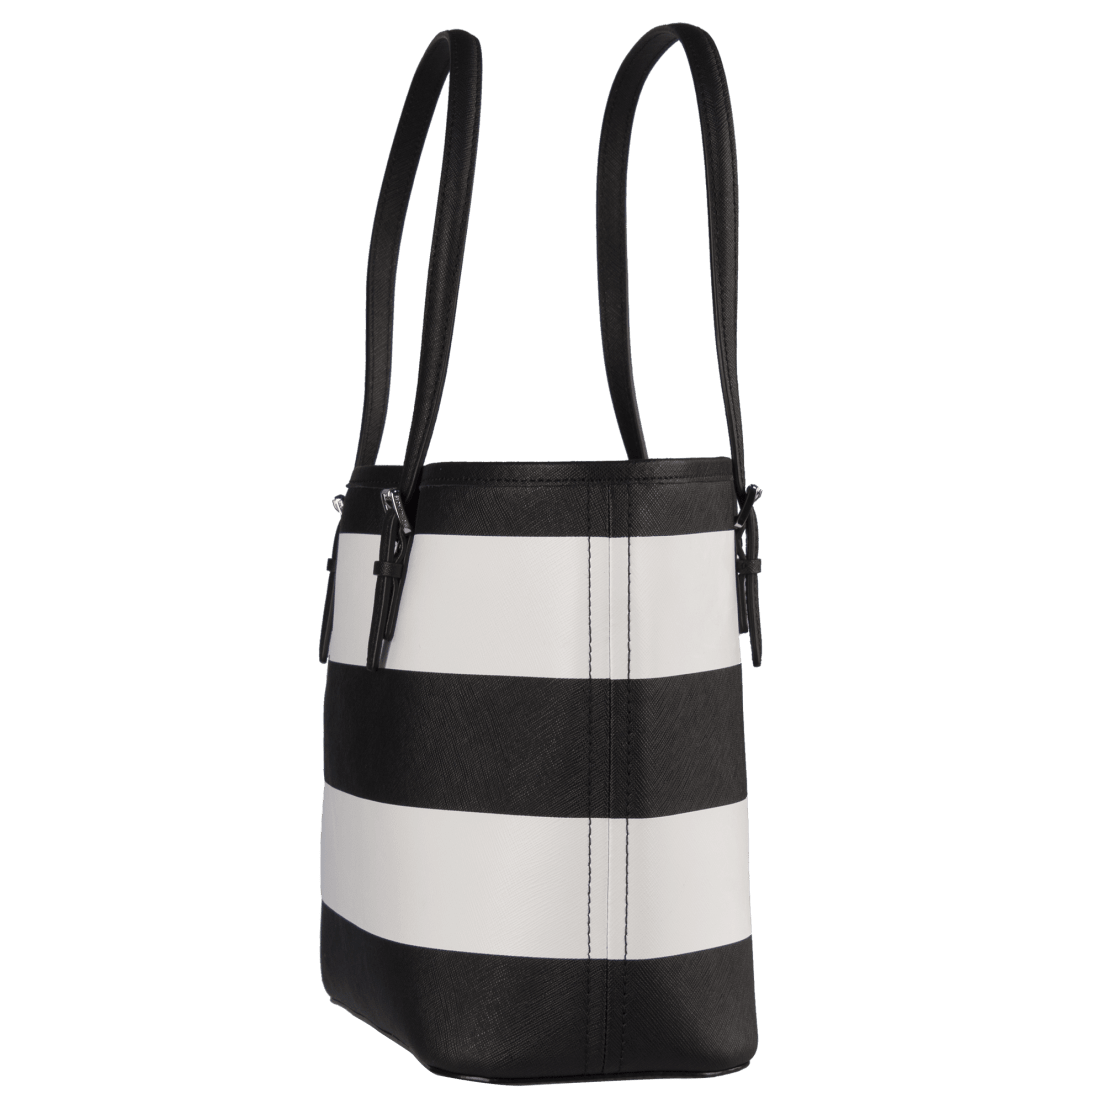 a093002c2e8470 ... Michael Kors Jet Set Travel Small Saffiano Leather Top-Zip Tote in  Black & White. Too late